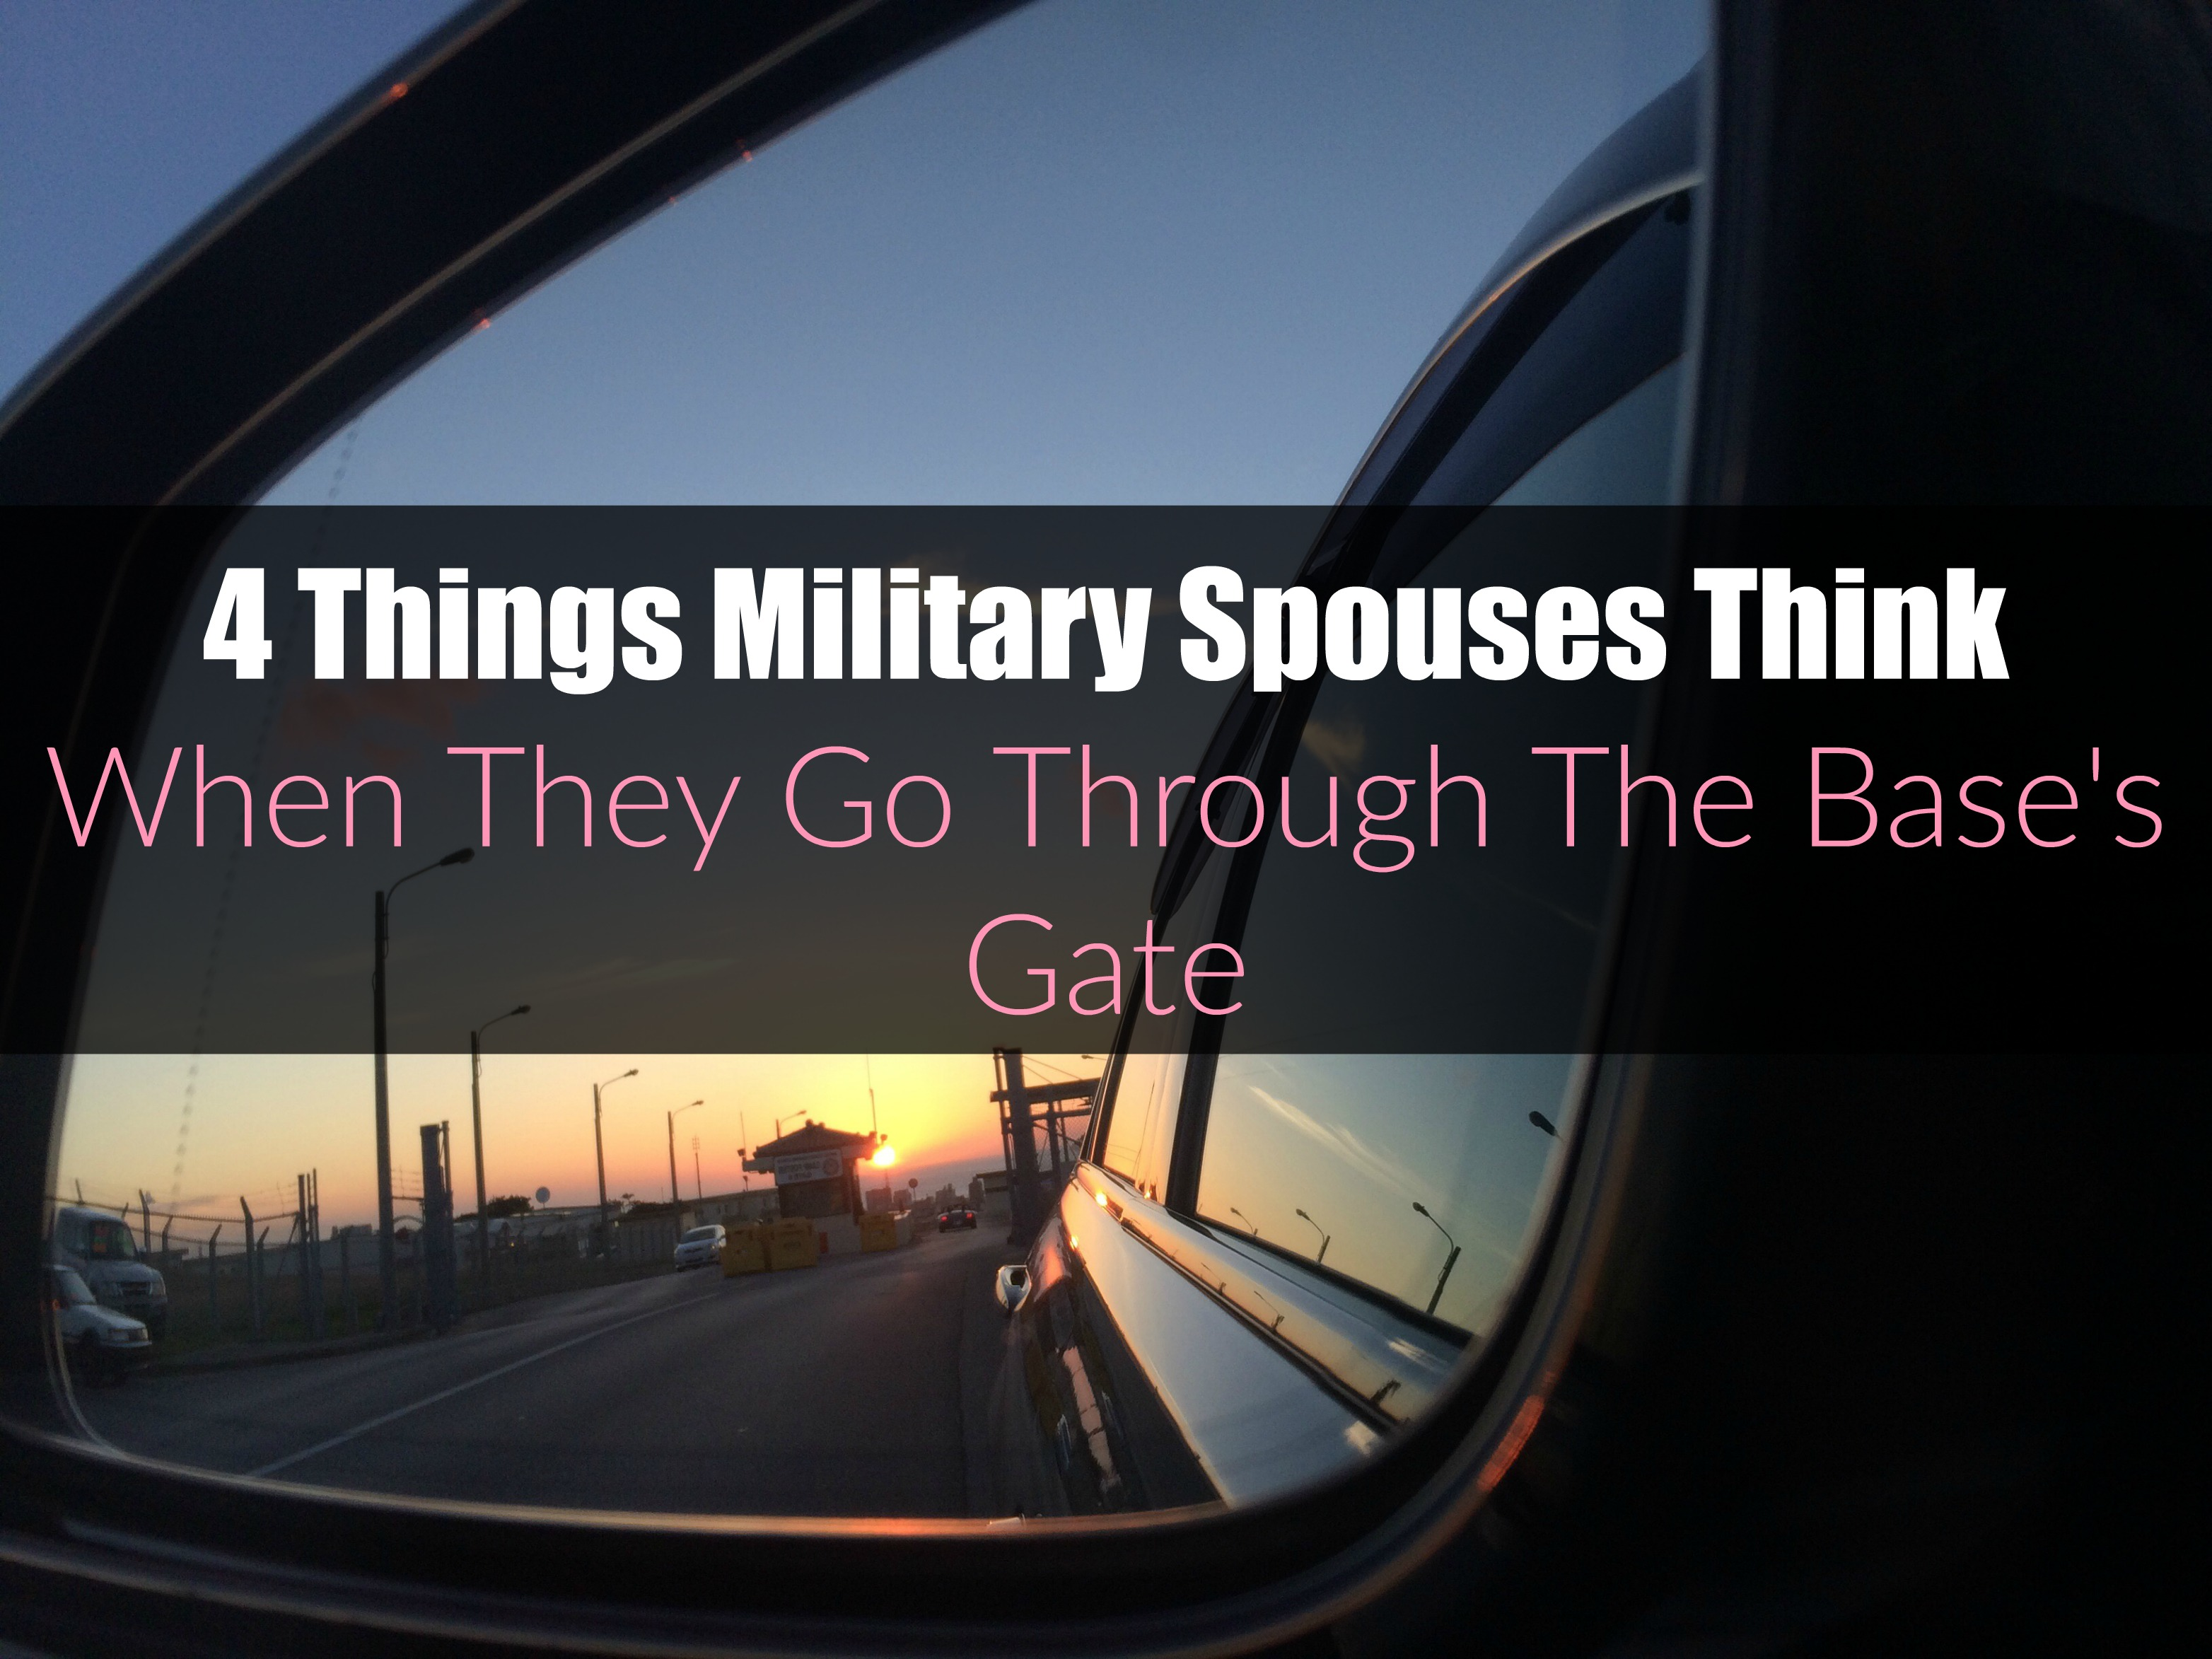 4 Things Military Spouses Think When They Go Through The Base's Gate